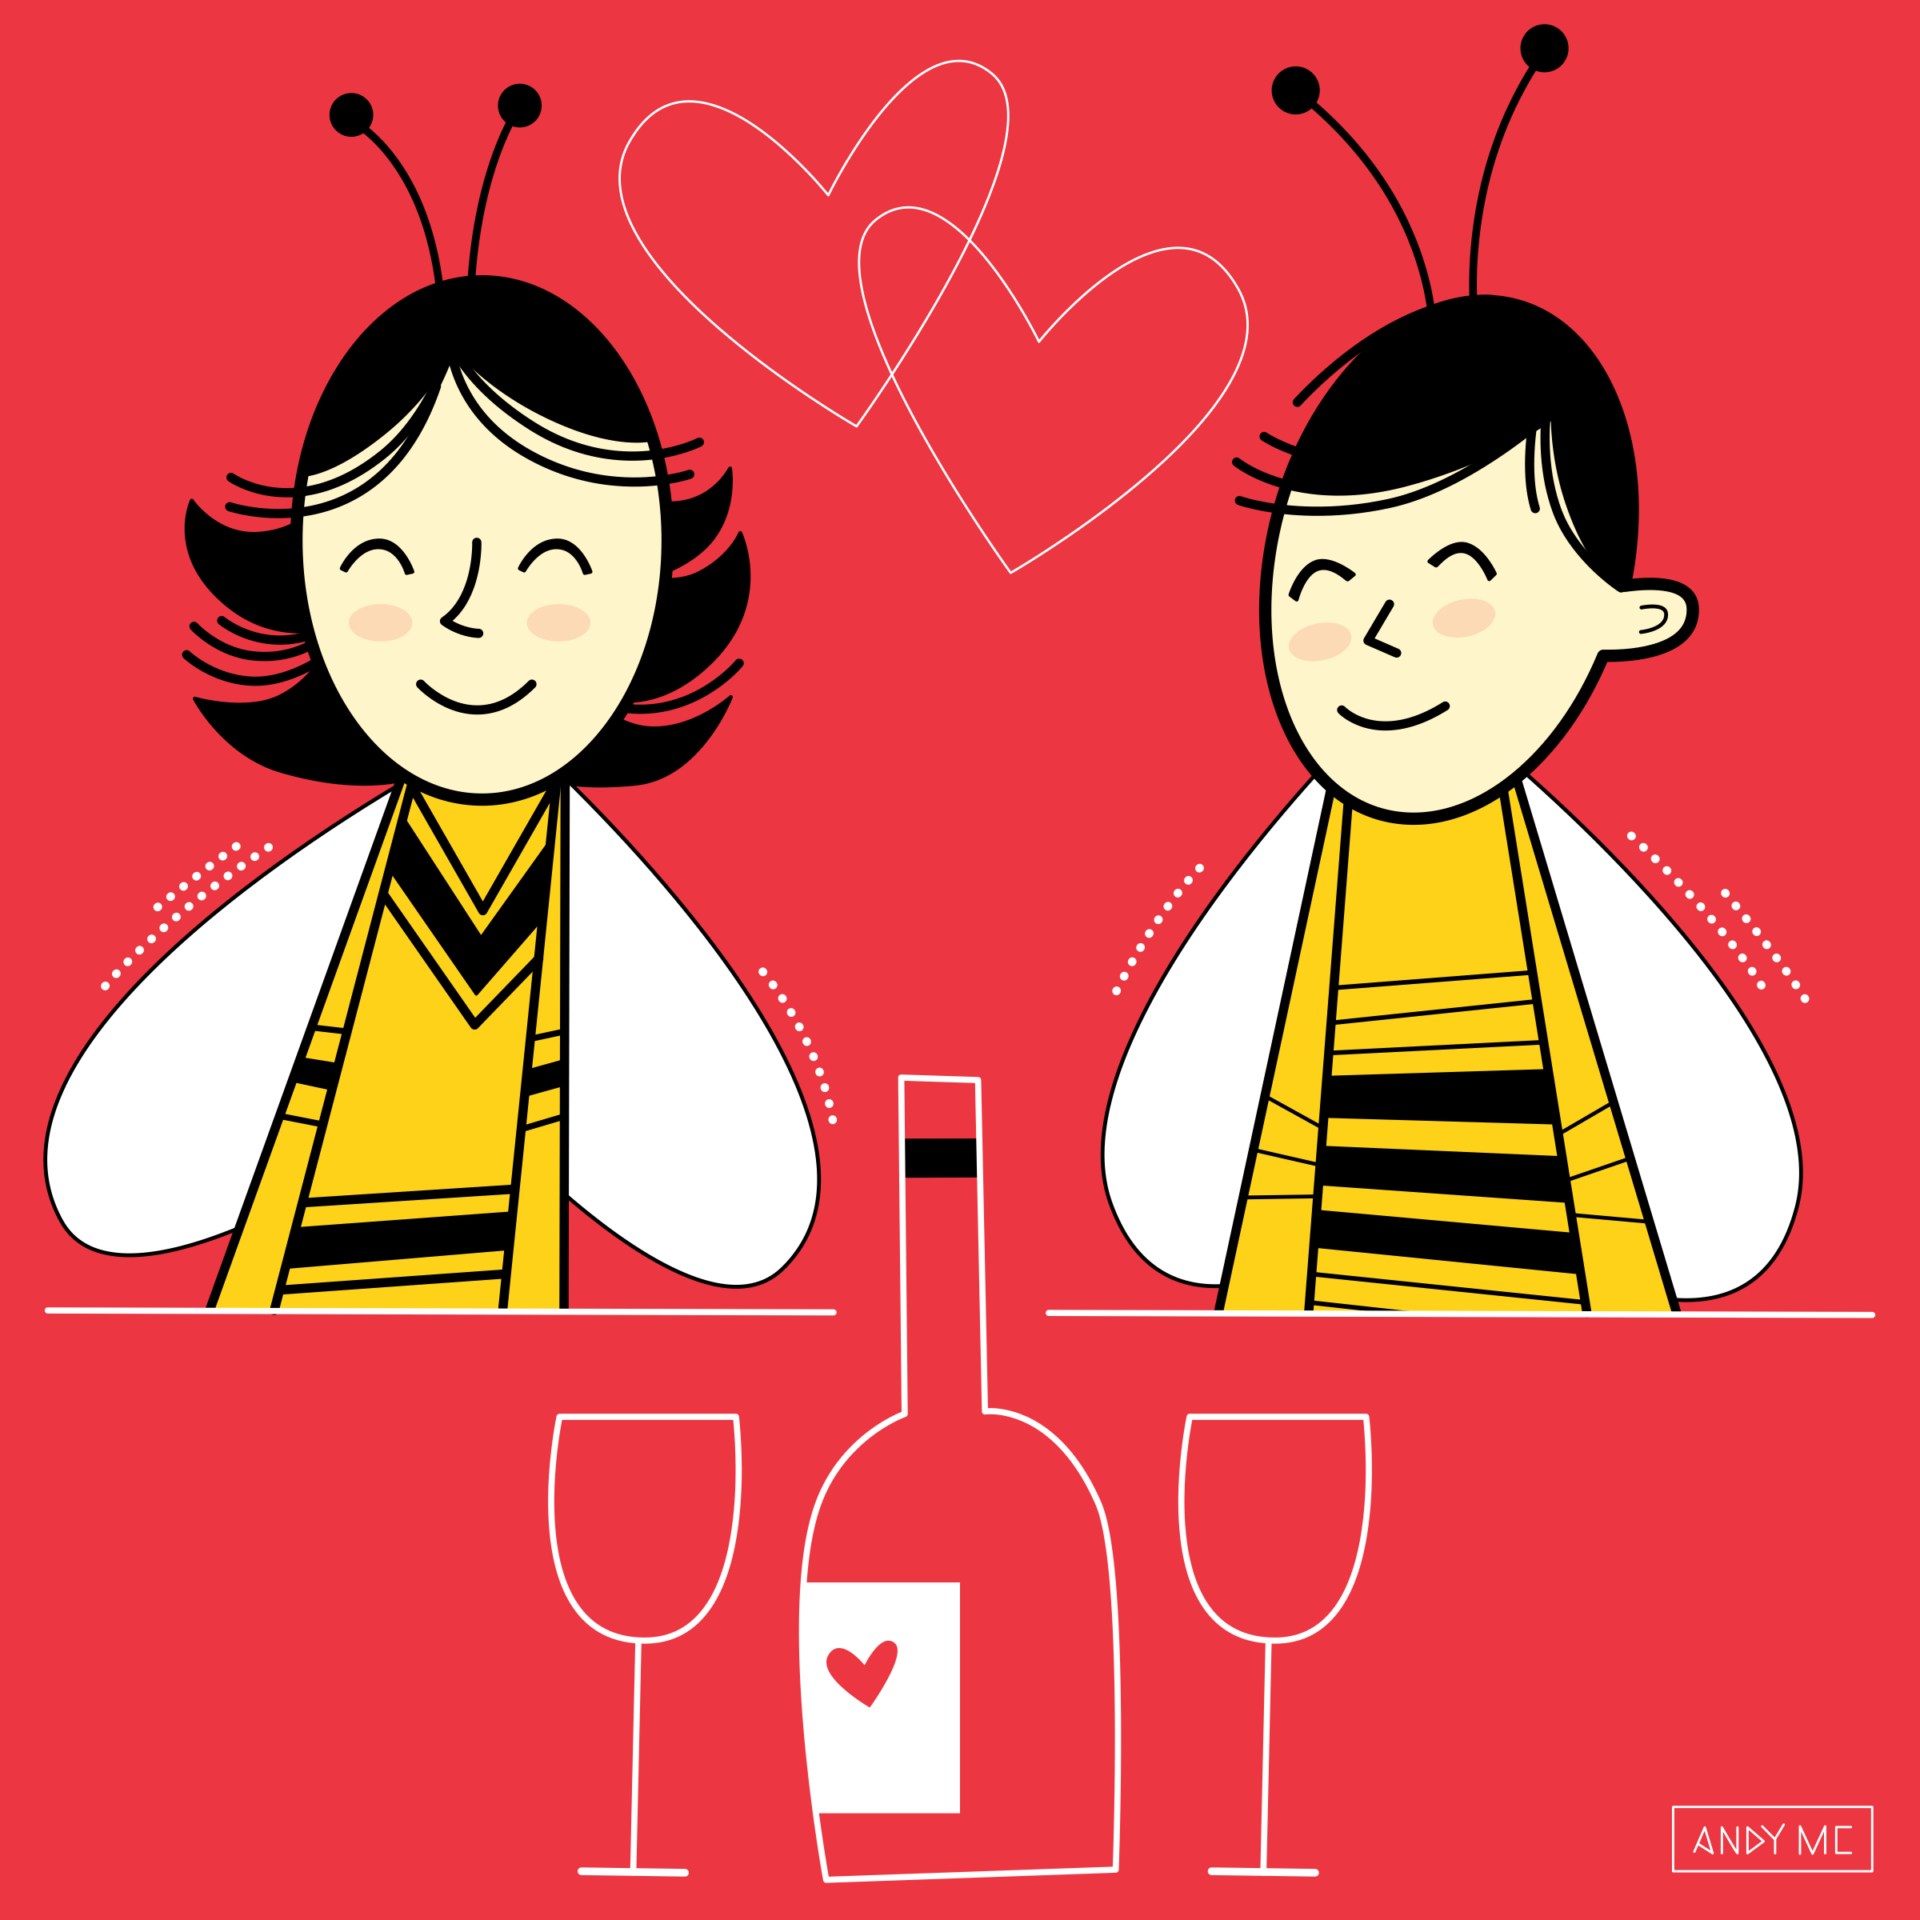 an illustration of a cute honey bee couple